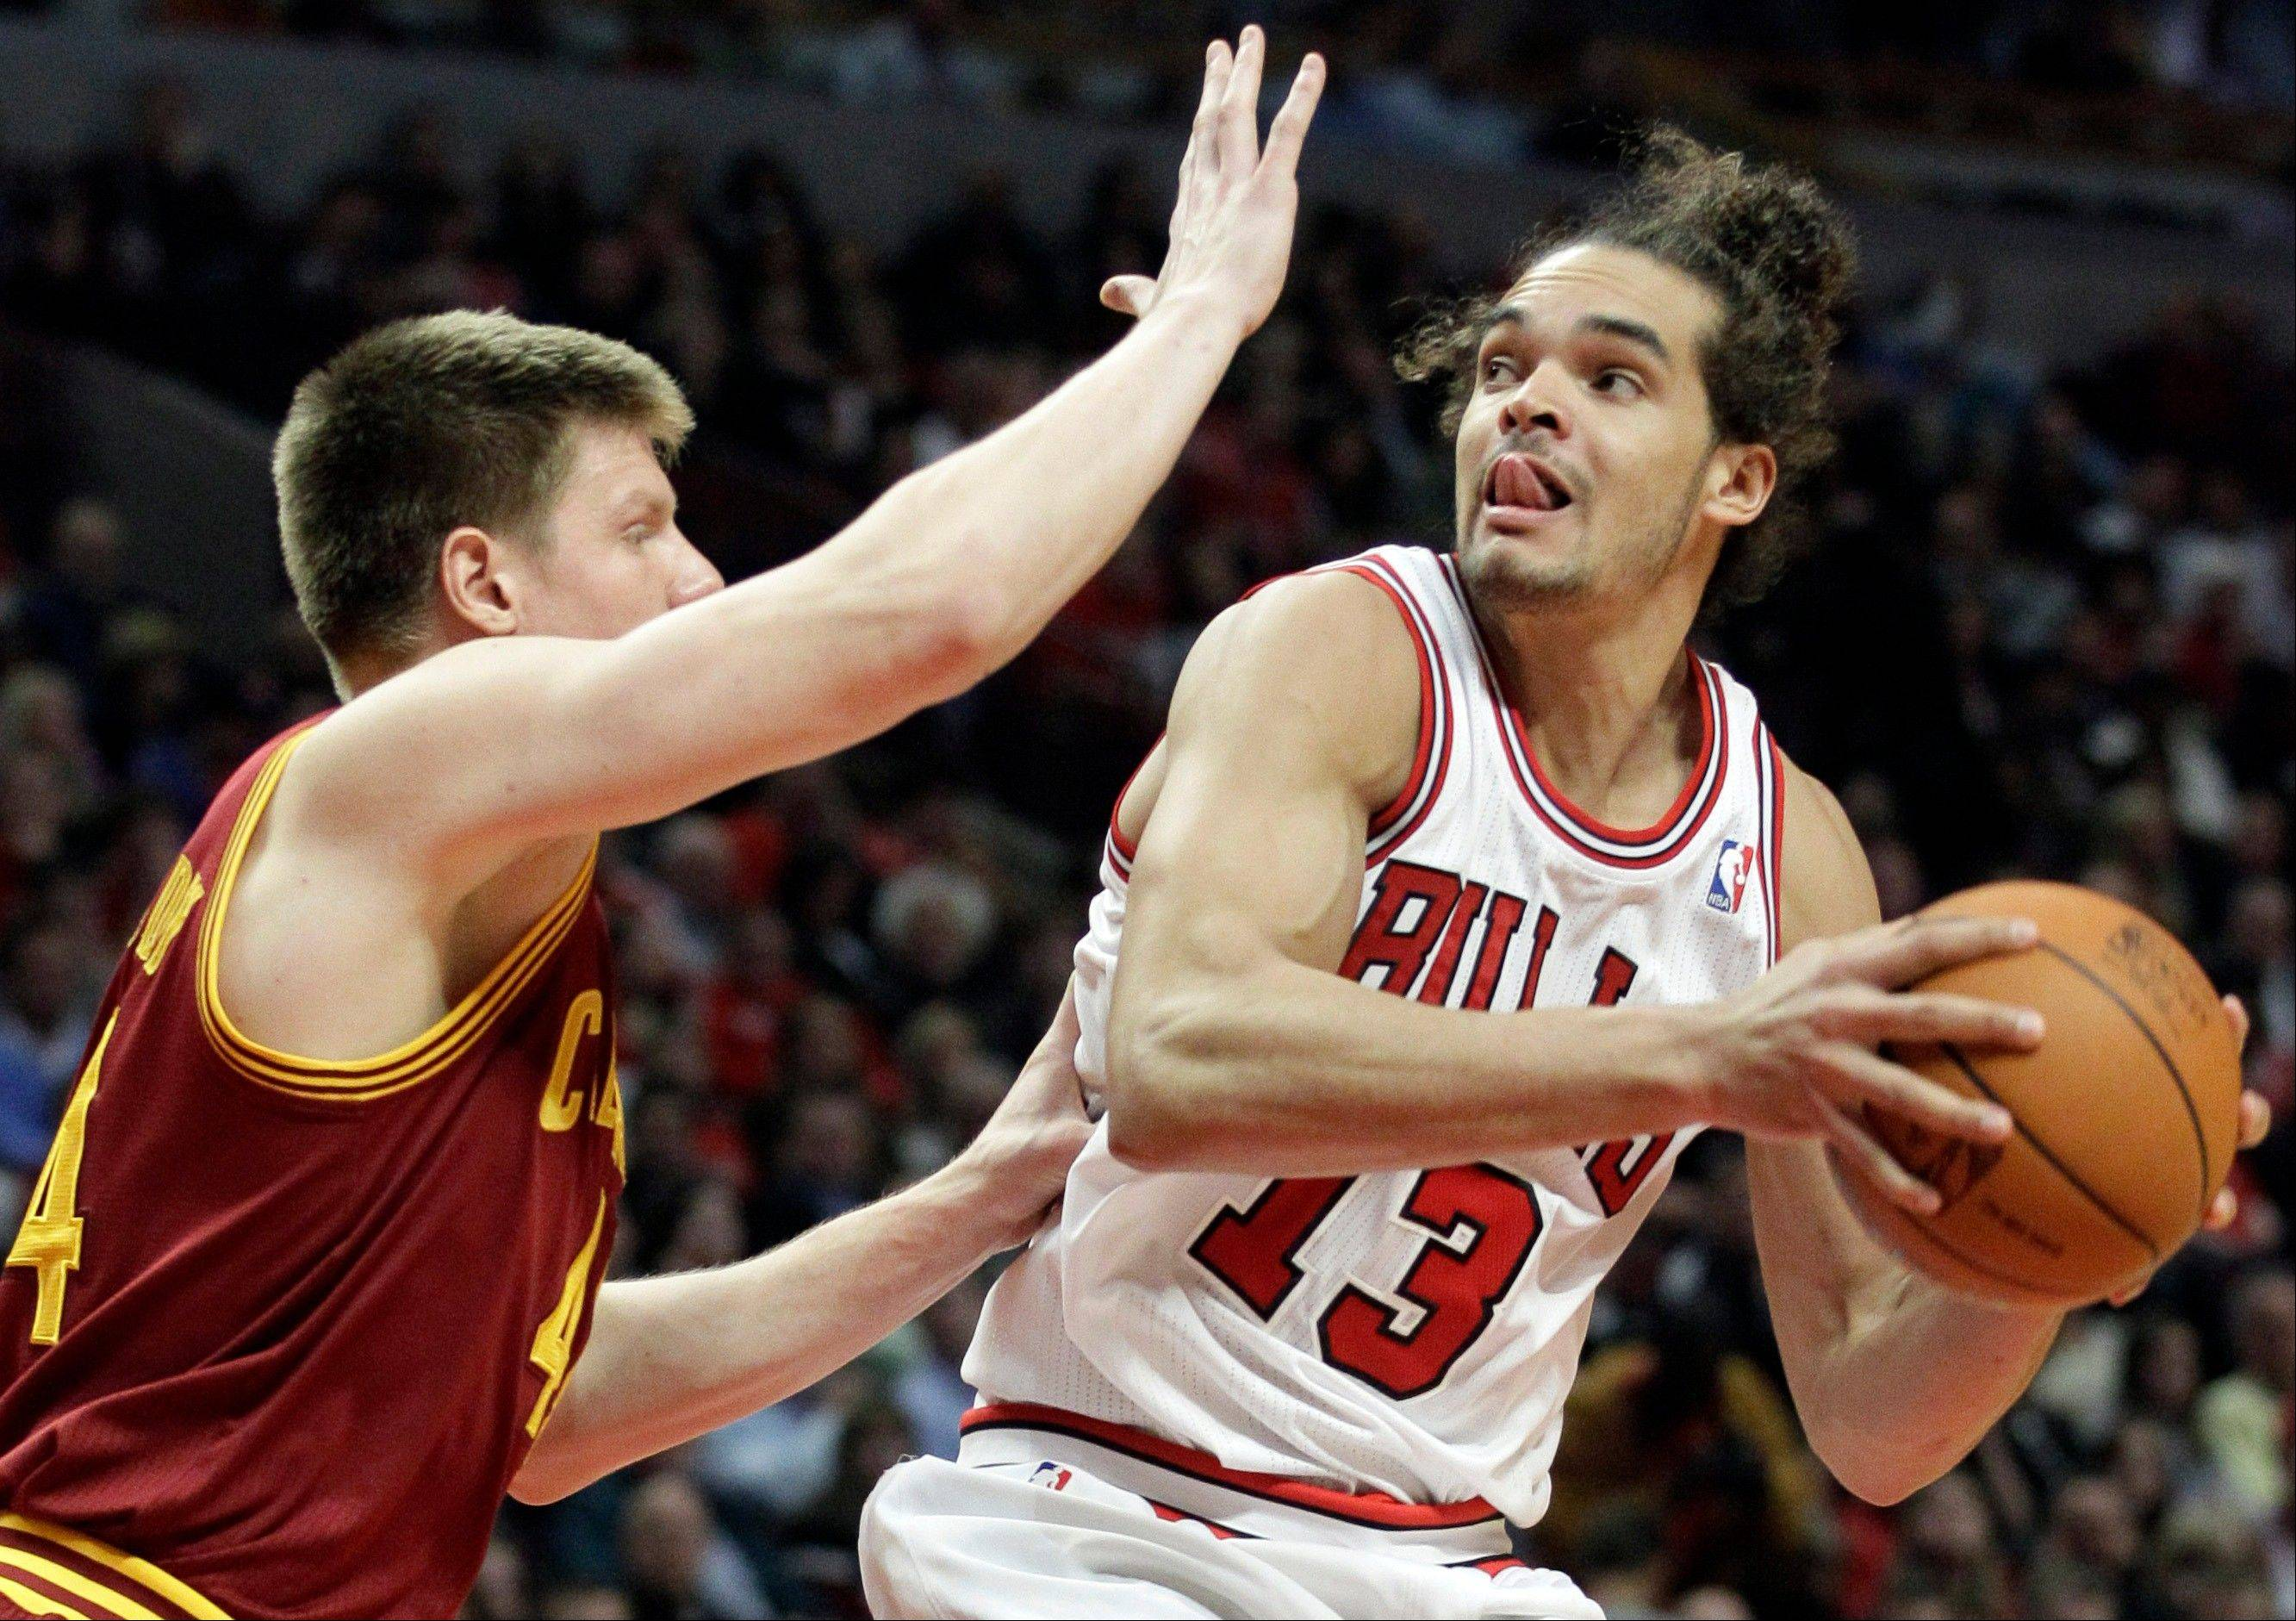 Bulls rout Cavs, earn overall No. 1 seed